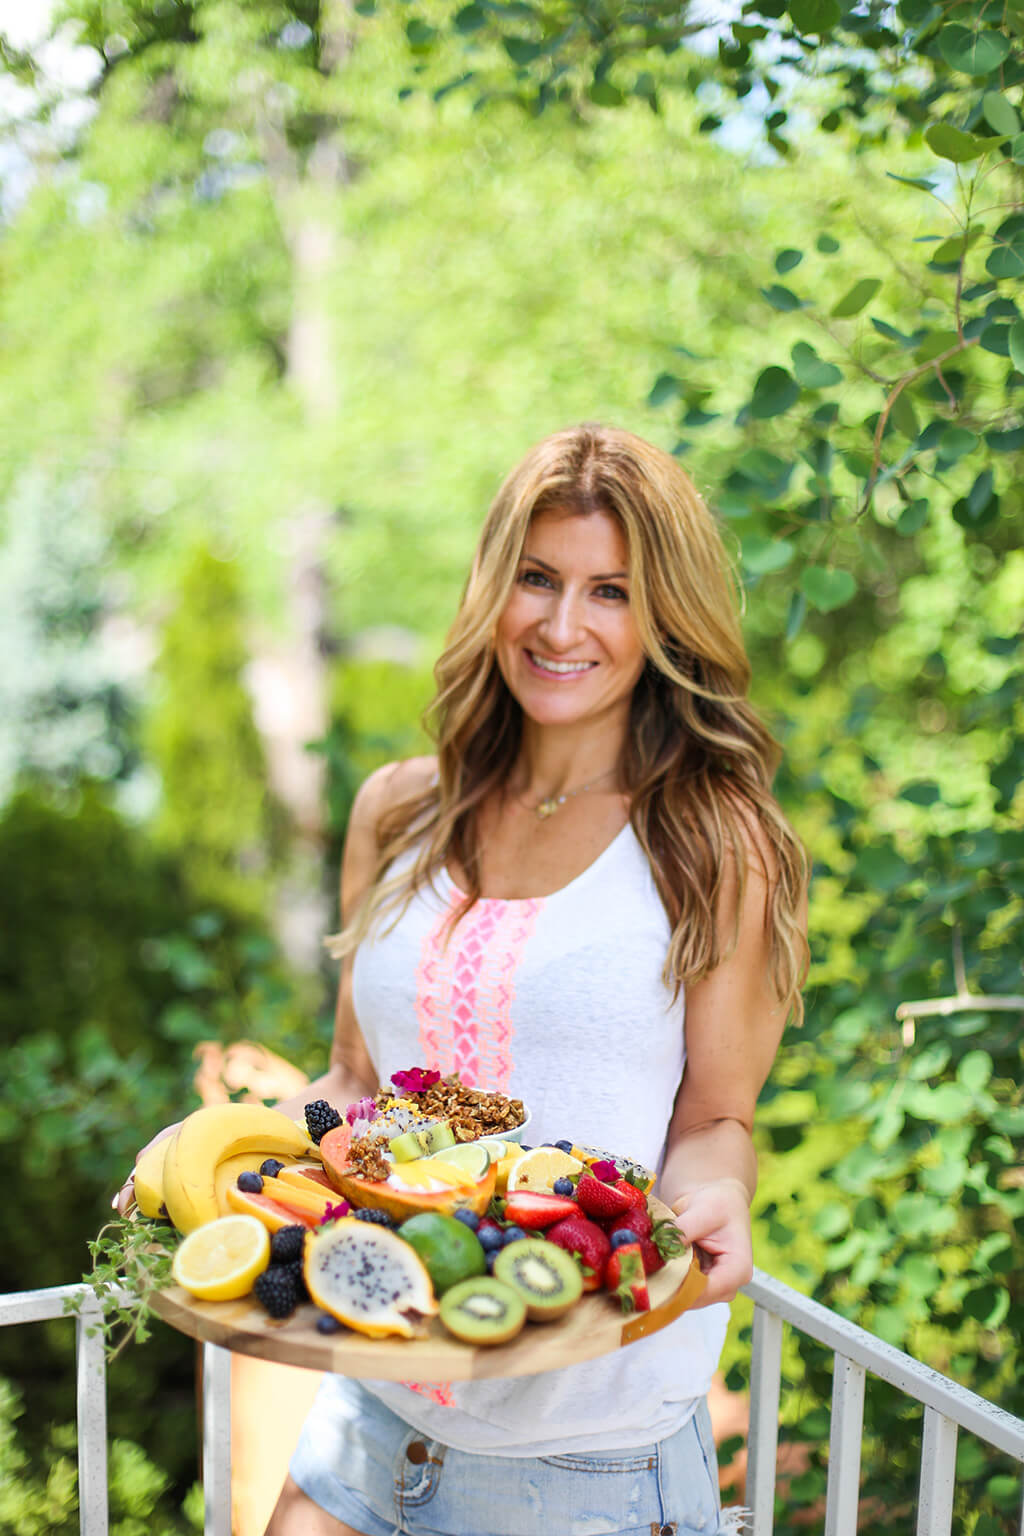 Elizabeth Stein from Purely Elizabeth. Inspired health coach.